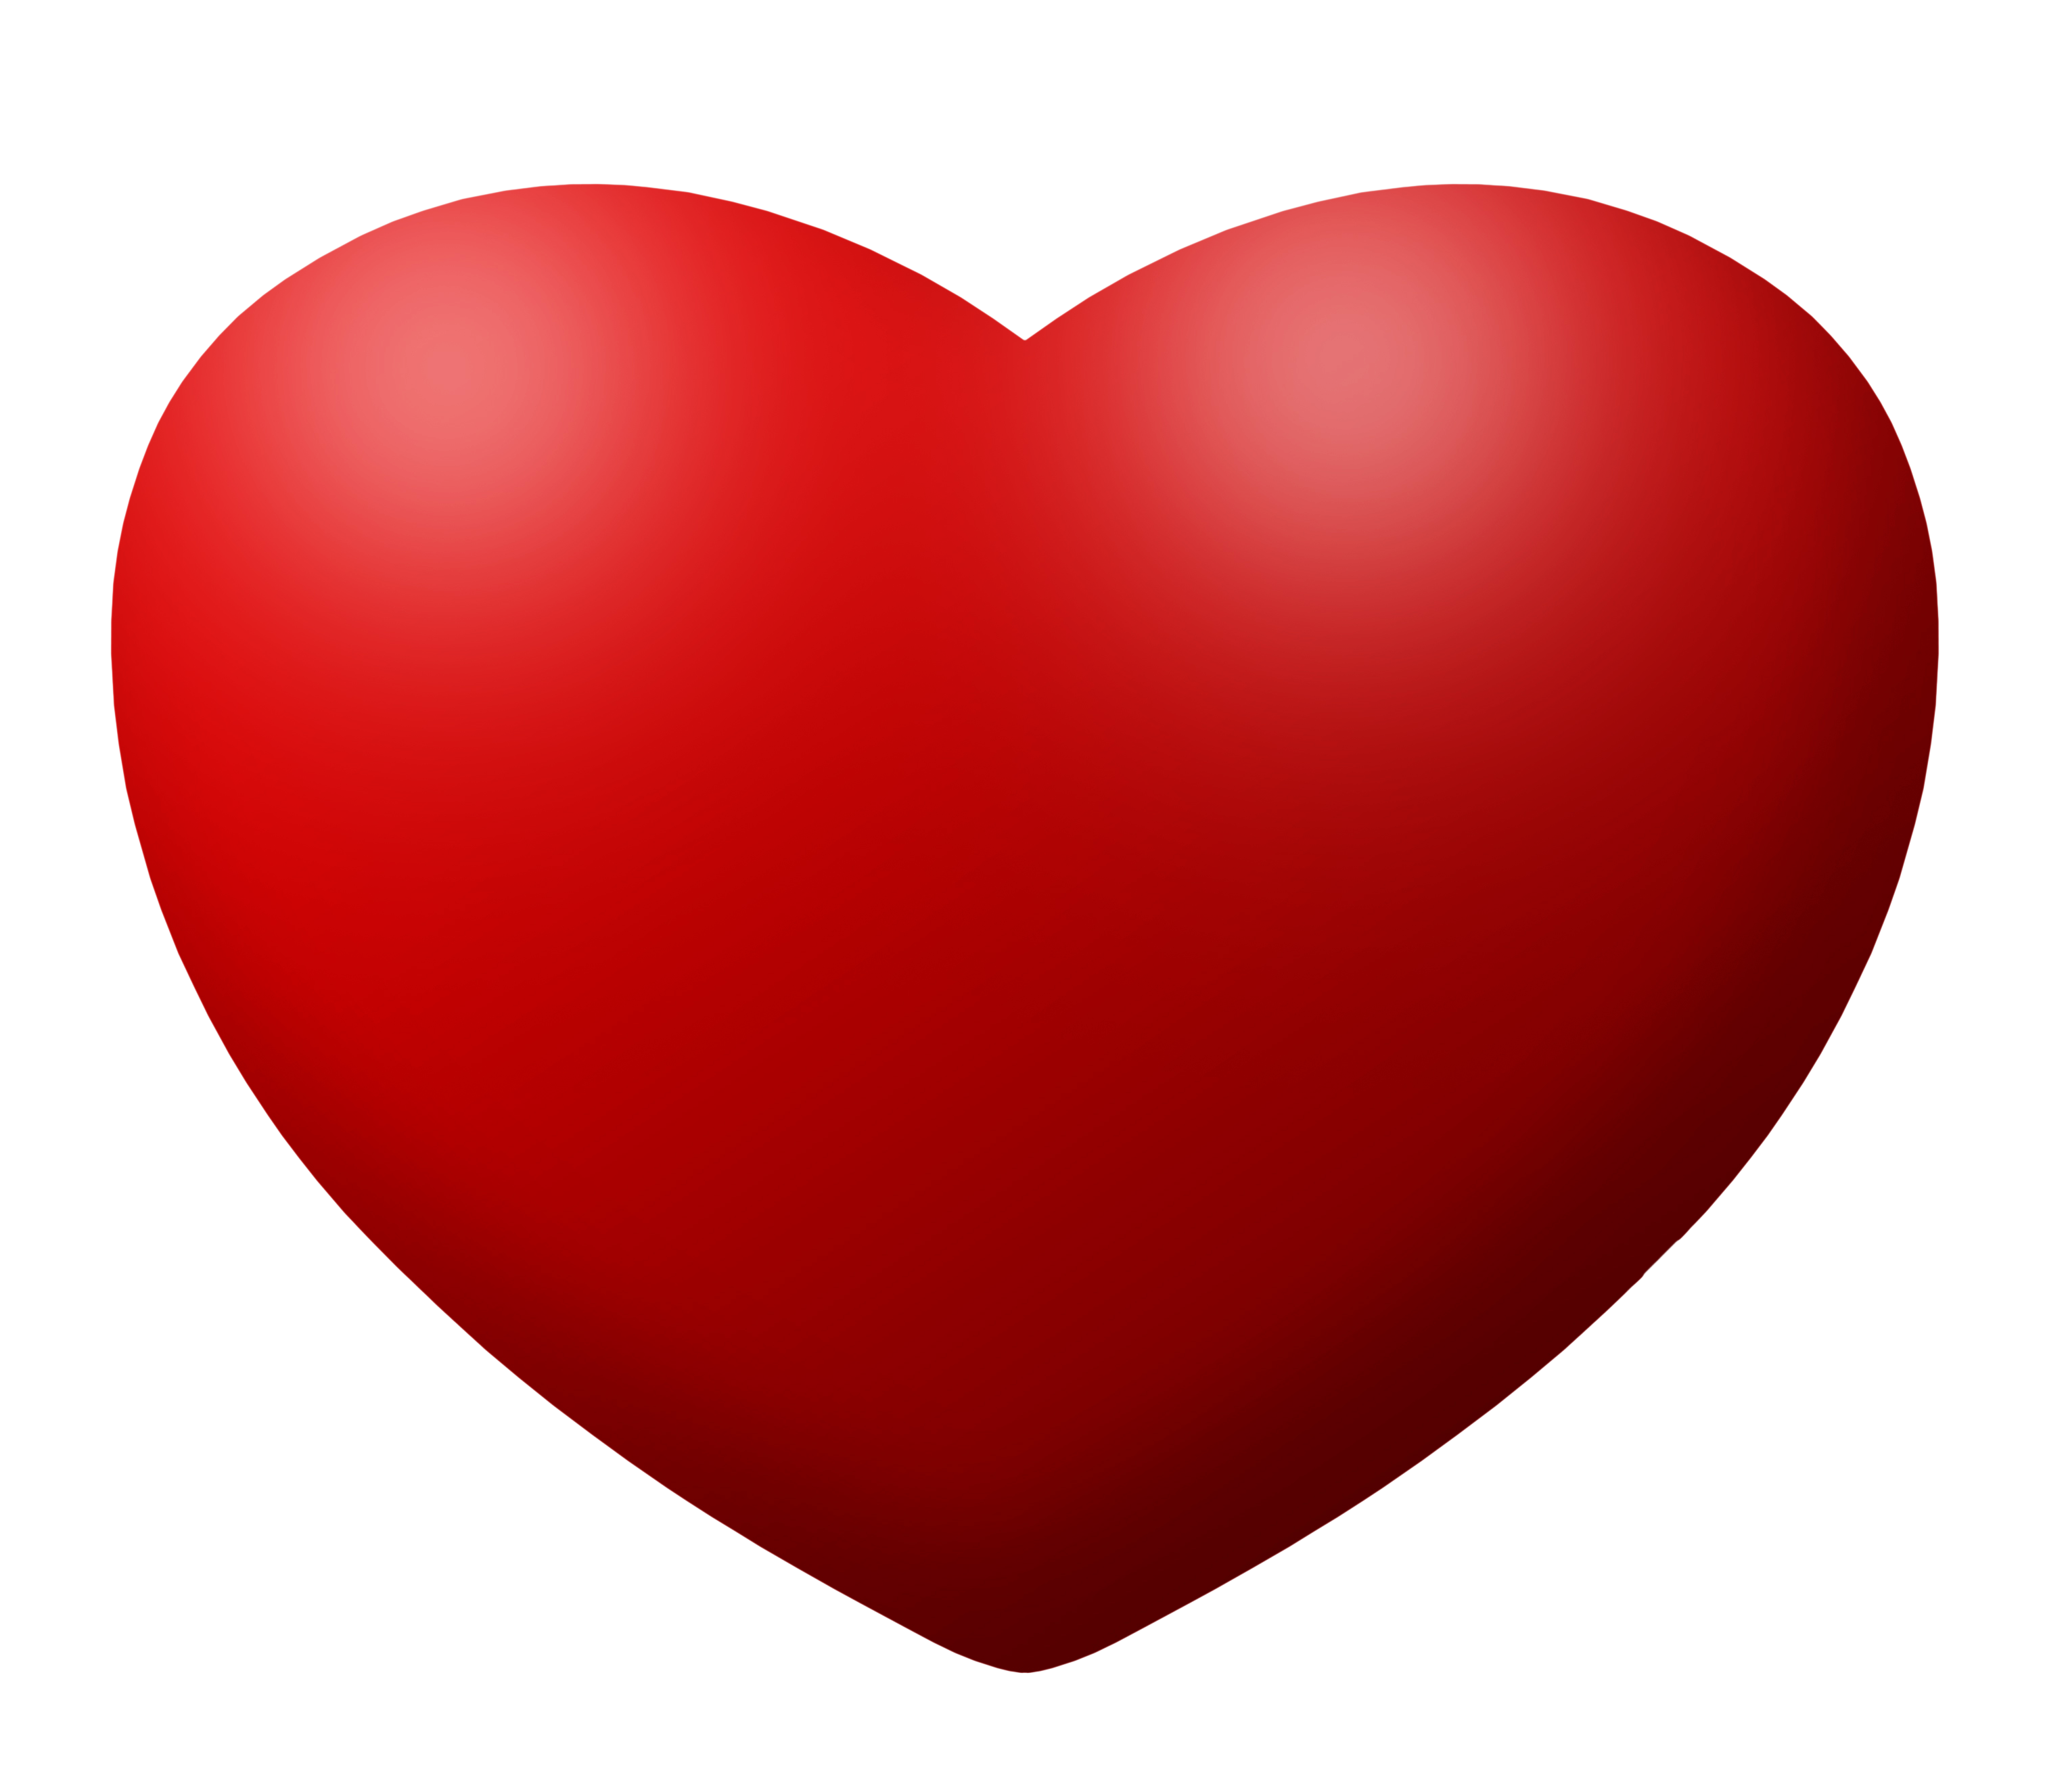 Heart Png Image, Free Download - Heart, Transparent background PNG HD thumbnail